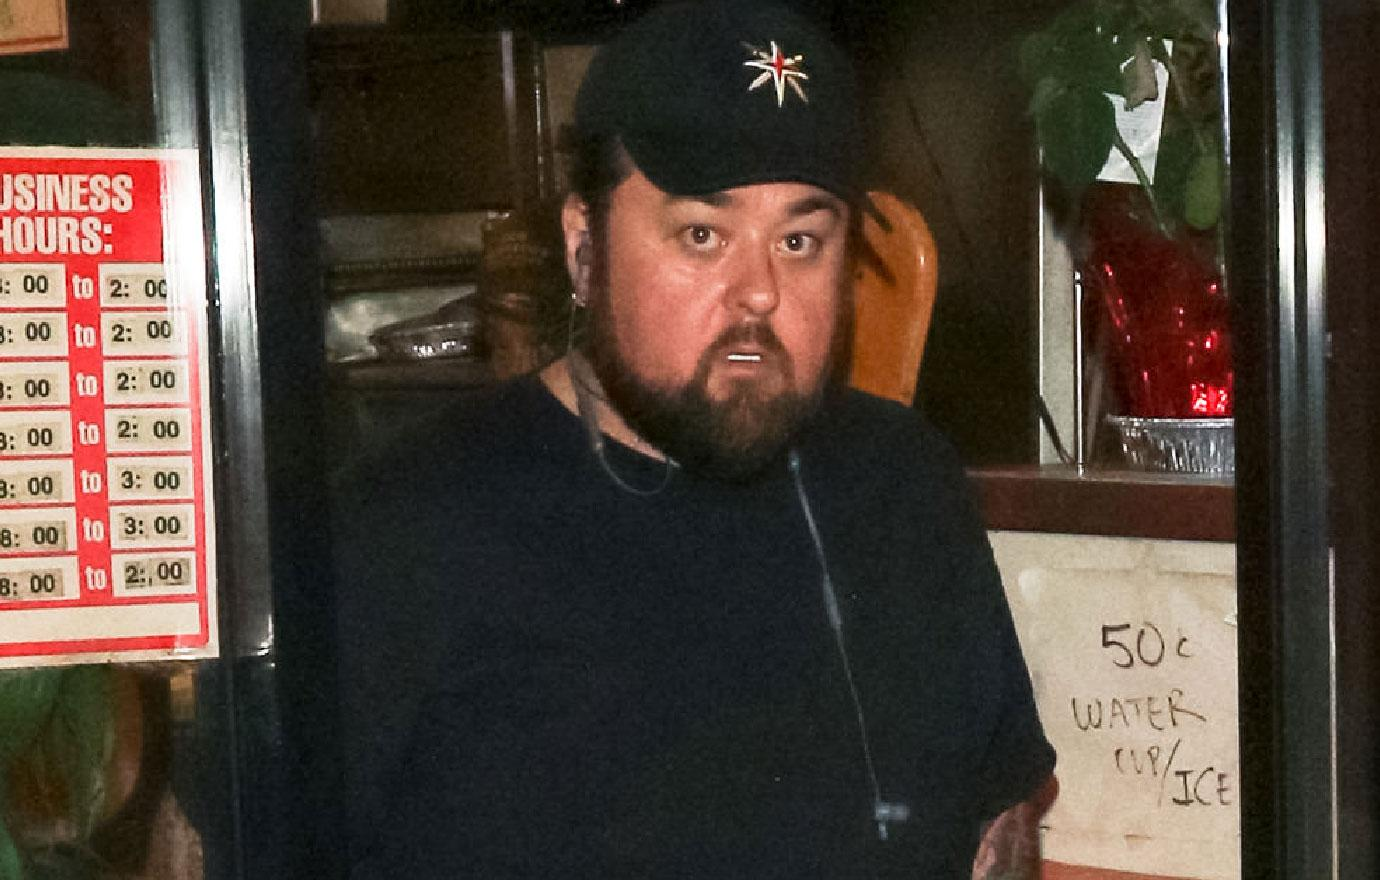 Pawn Stars Chumlee Is Engaged Has Lost More Than 100 Pounds